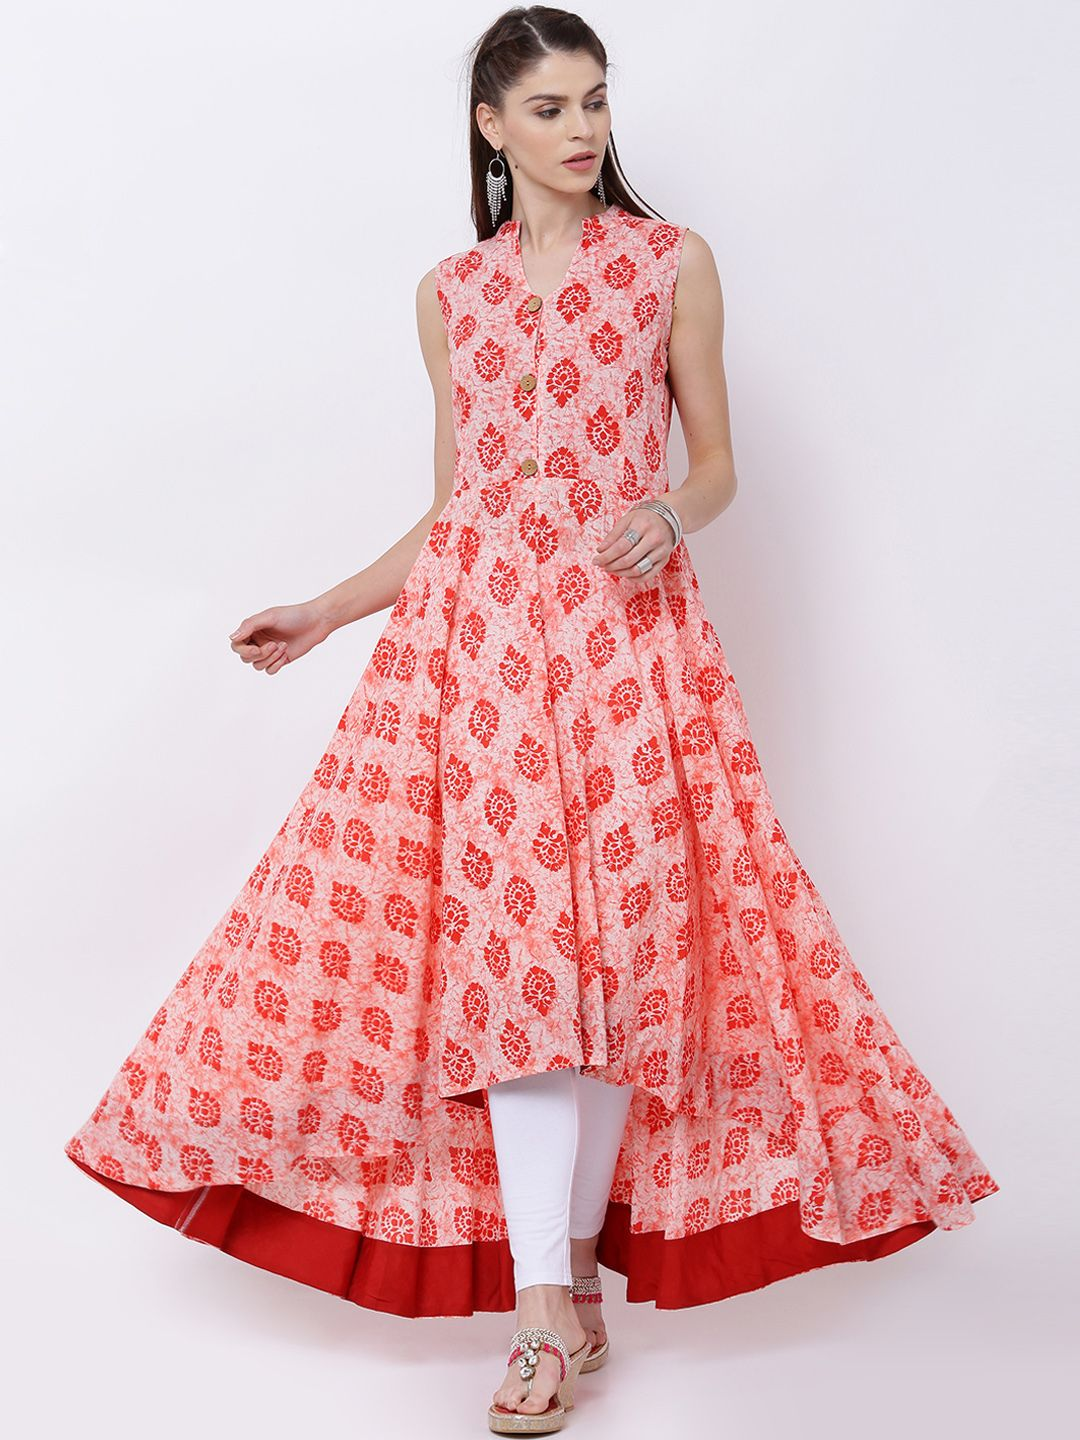 85a63dea681 Vishudu Peach & Cream High Low Printed Anarkali Kurta | Women's ...